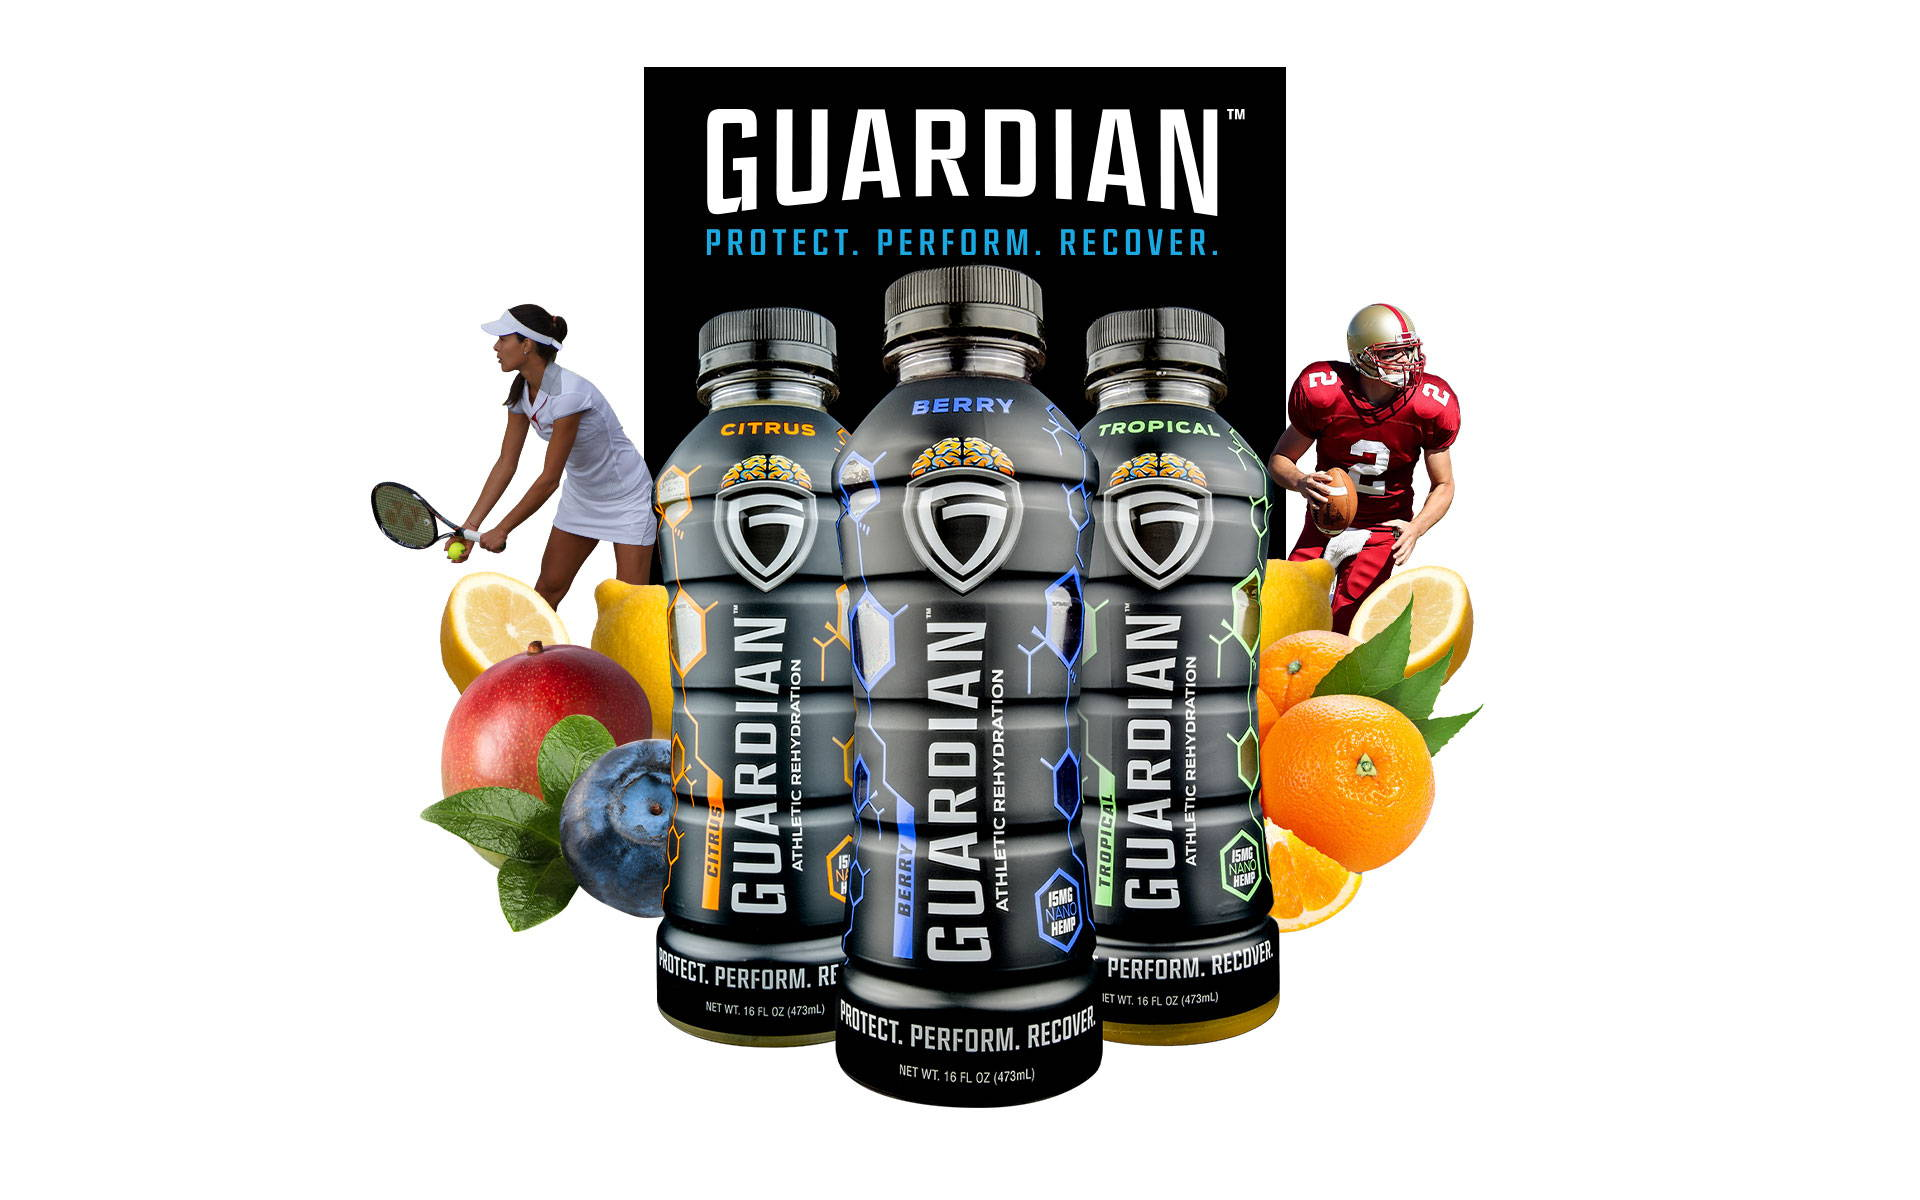 Guardian Athletic Rehydration Natural Sports Drink